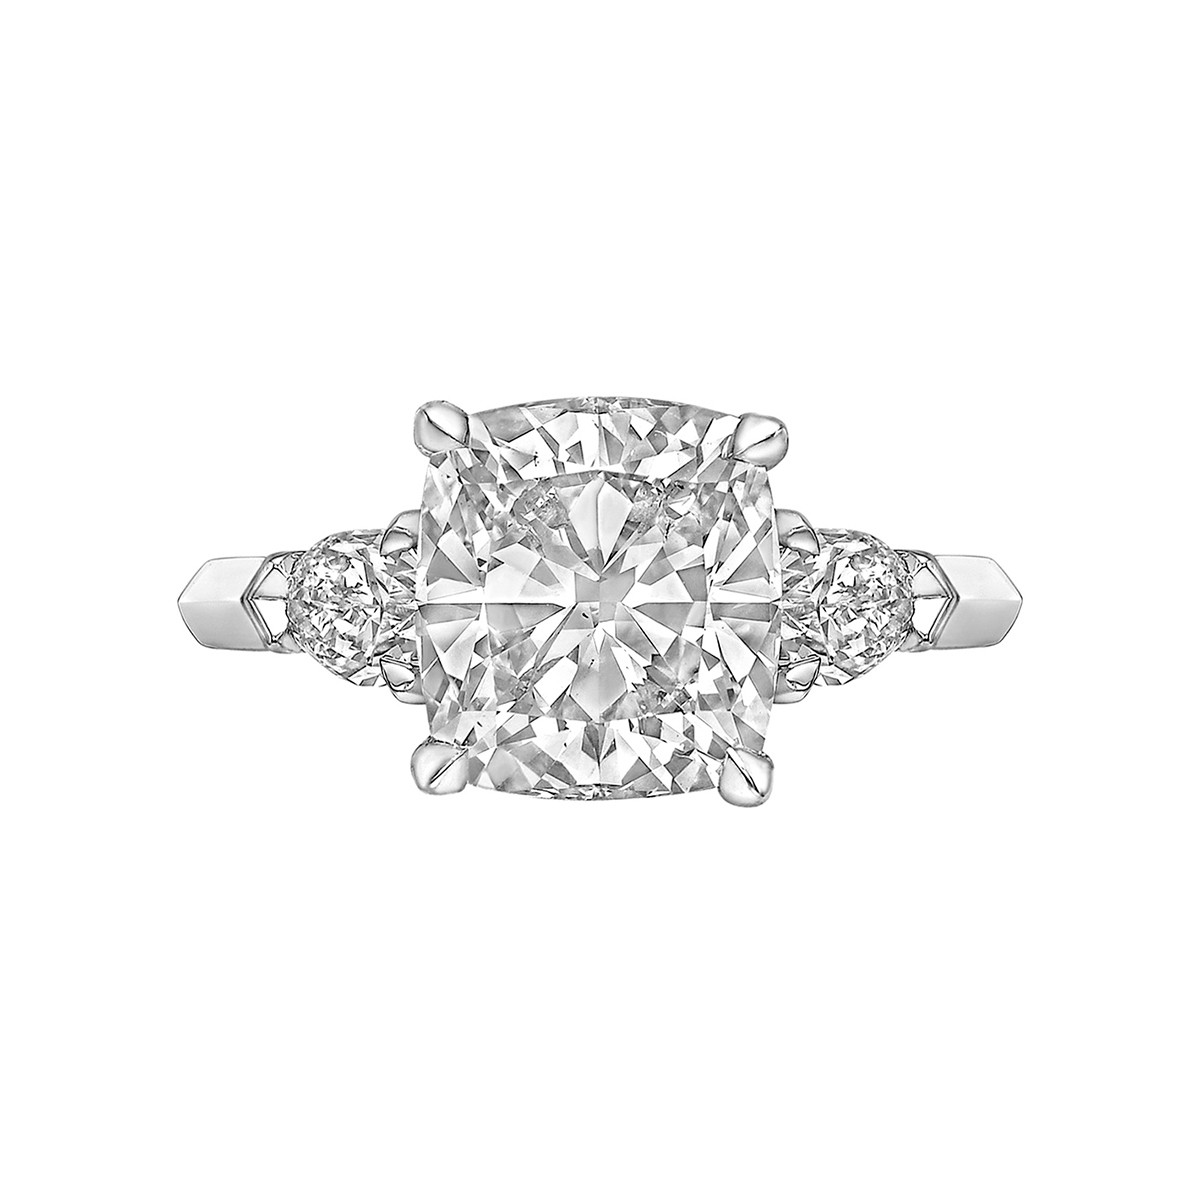 3.01ct Colorless Cushion-Cut Diamond Ring